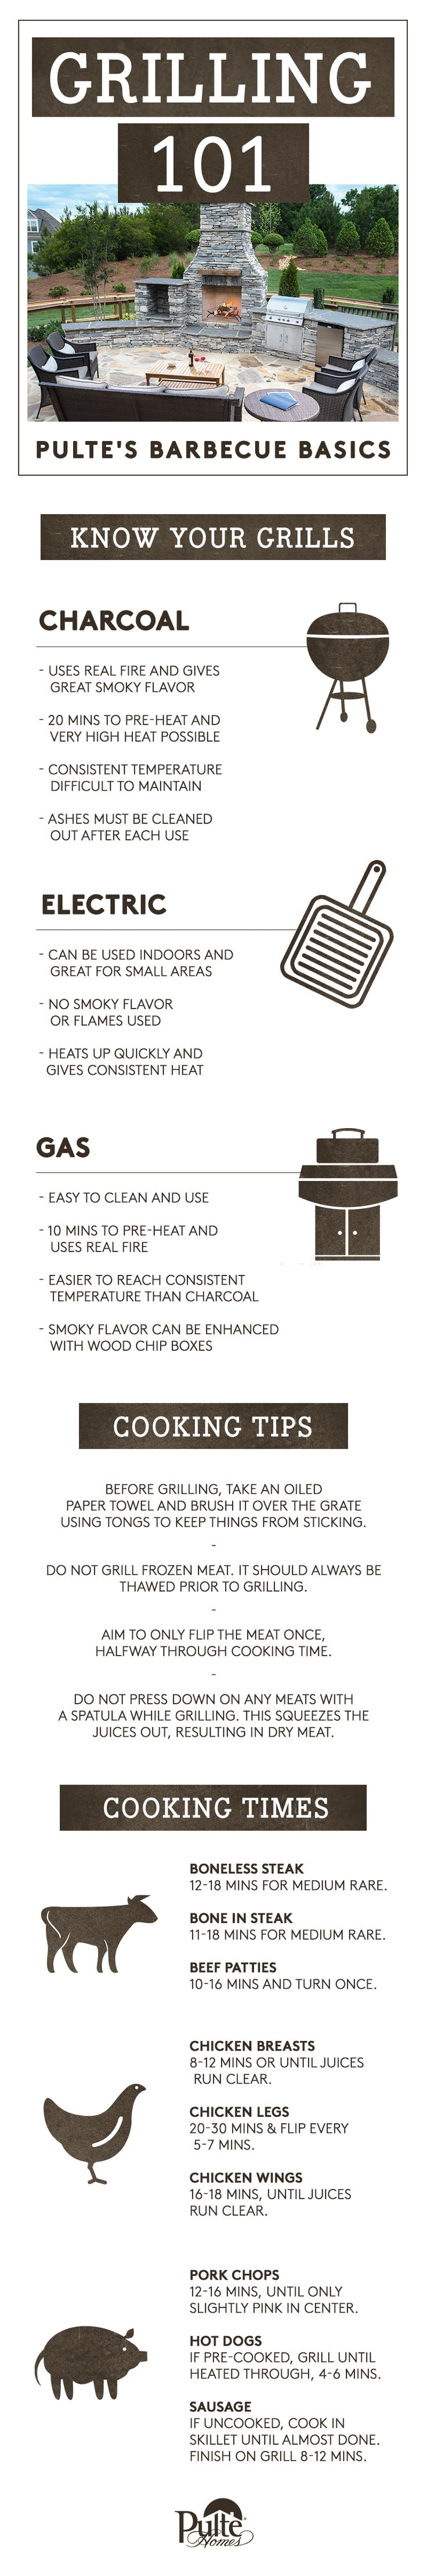 Ready to sizzle this summer? From charcoal to electric to gas, these grilling tips and how-to's will make sure your family barbecue is anything but basic. | Pulte Homes